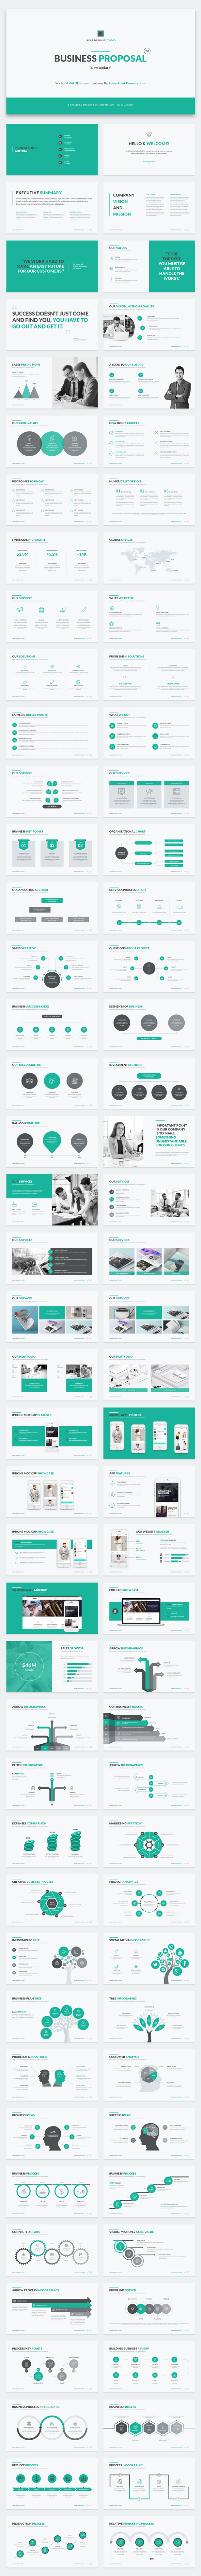 Business Proposal PowerPoint Template - 3